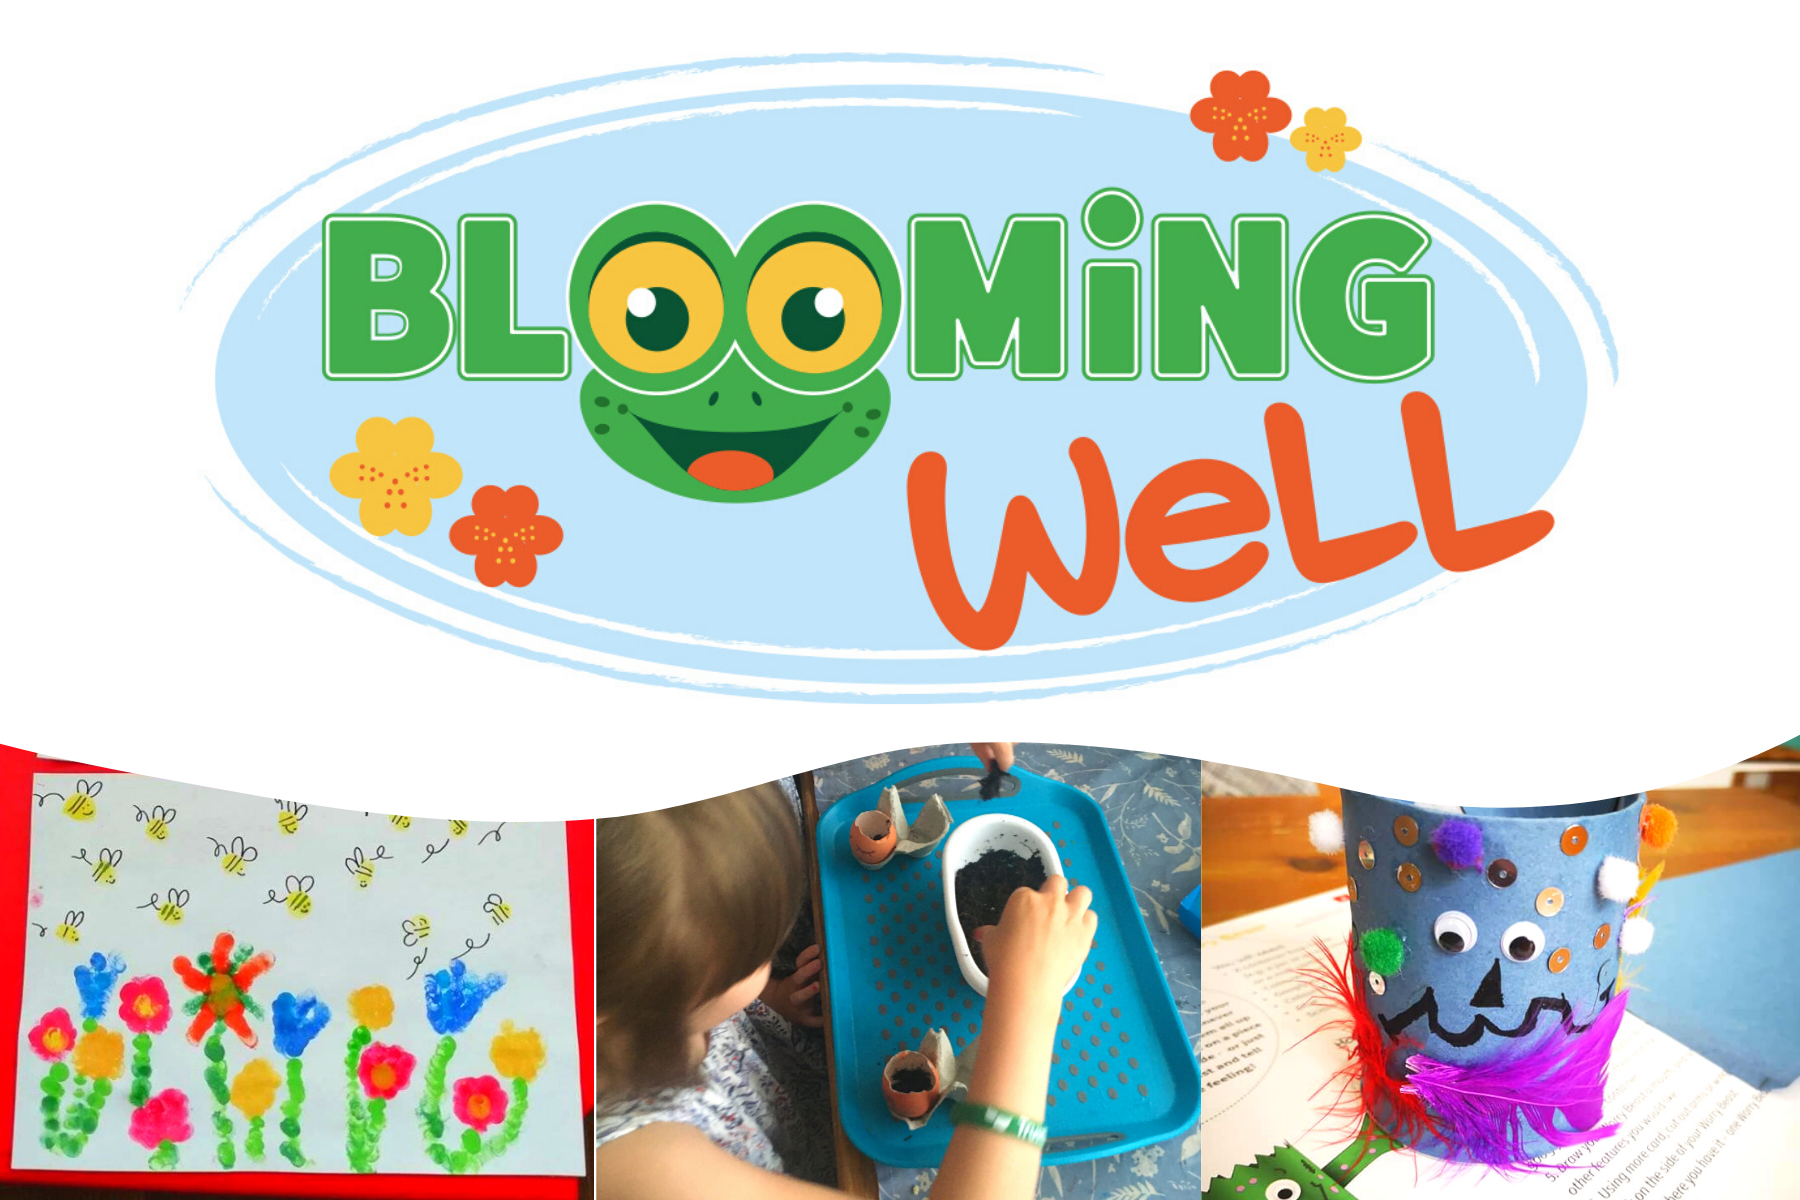 New Blooming Well family project is underway, and here's what you've been up to so far